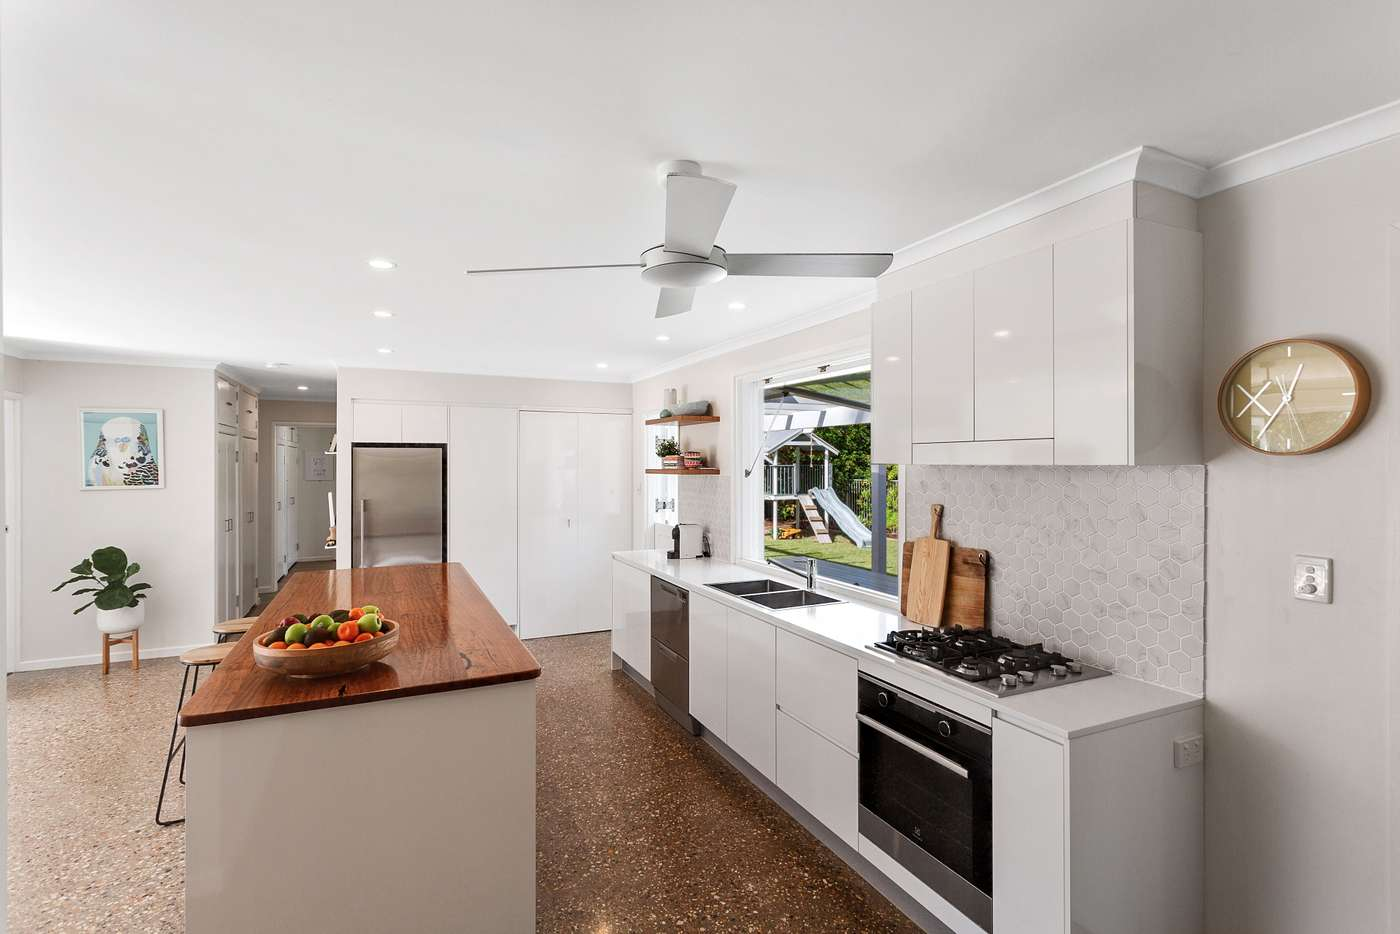 Sixth view of Homely house listing, 5 Koel Street, Noosaville QLD 4566